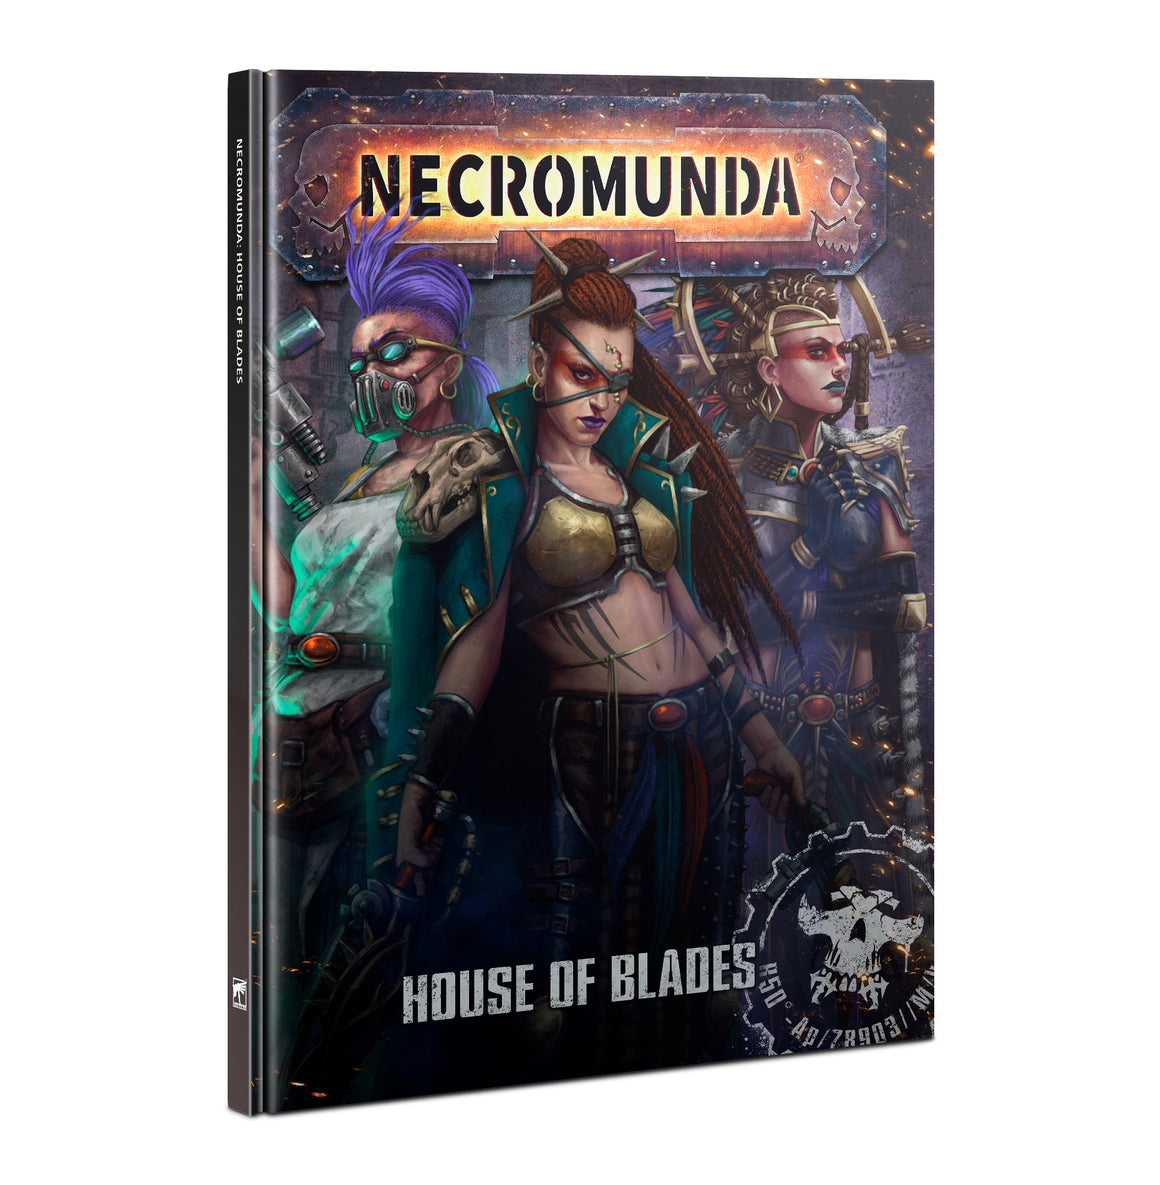 Necromunda House of Blades